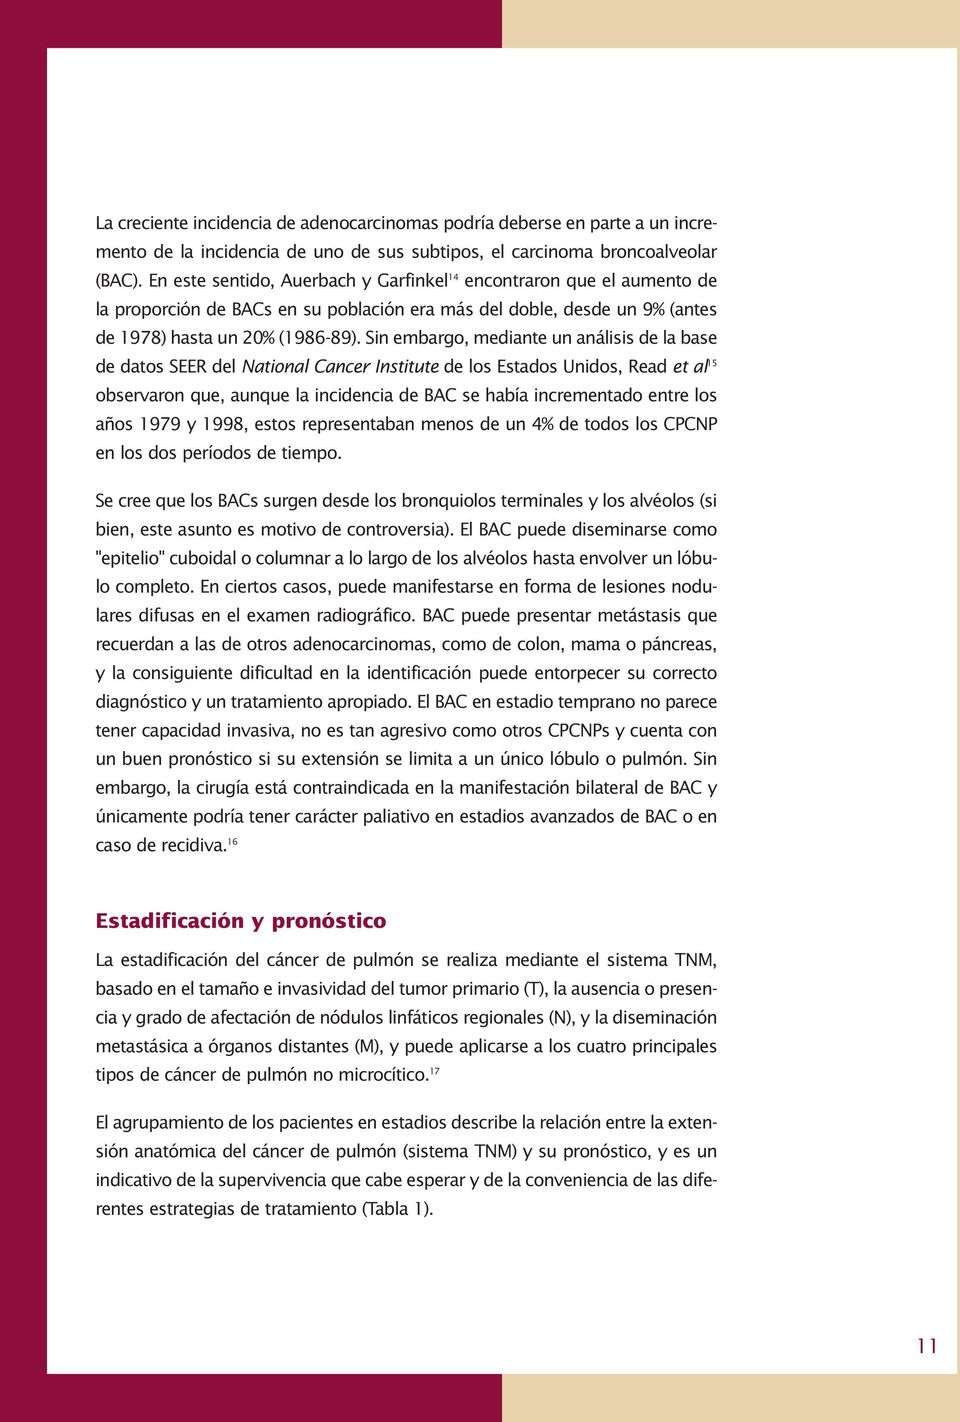 Sin embargo, mediante un análisis de la base de datos SEER del National Cancer Institute de los Estados Unidos, Read et al 15 observaron que, aunque la incidencia de BAC se había incrementado entre